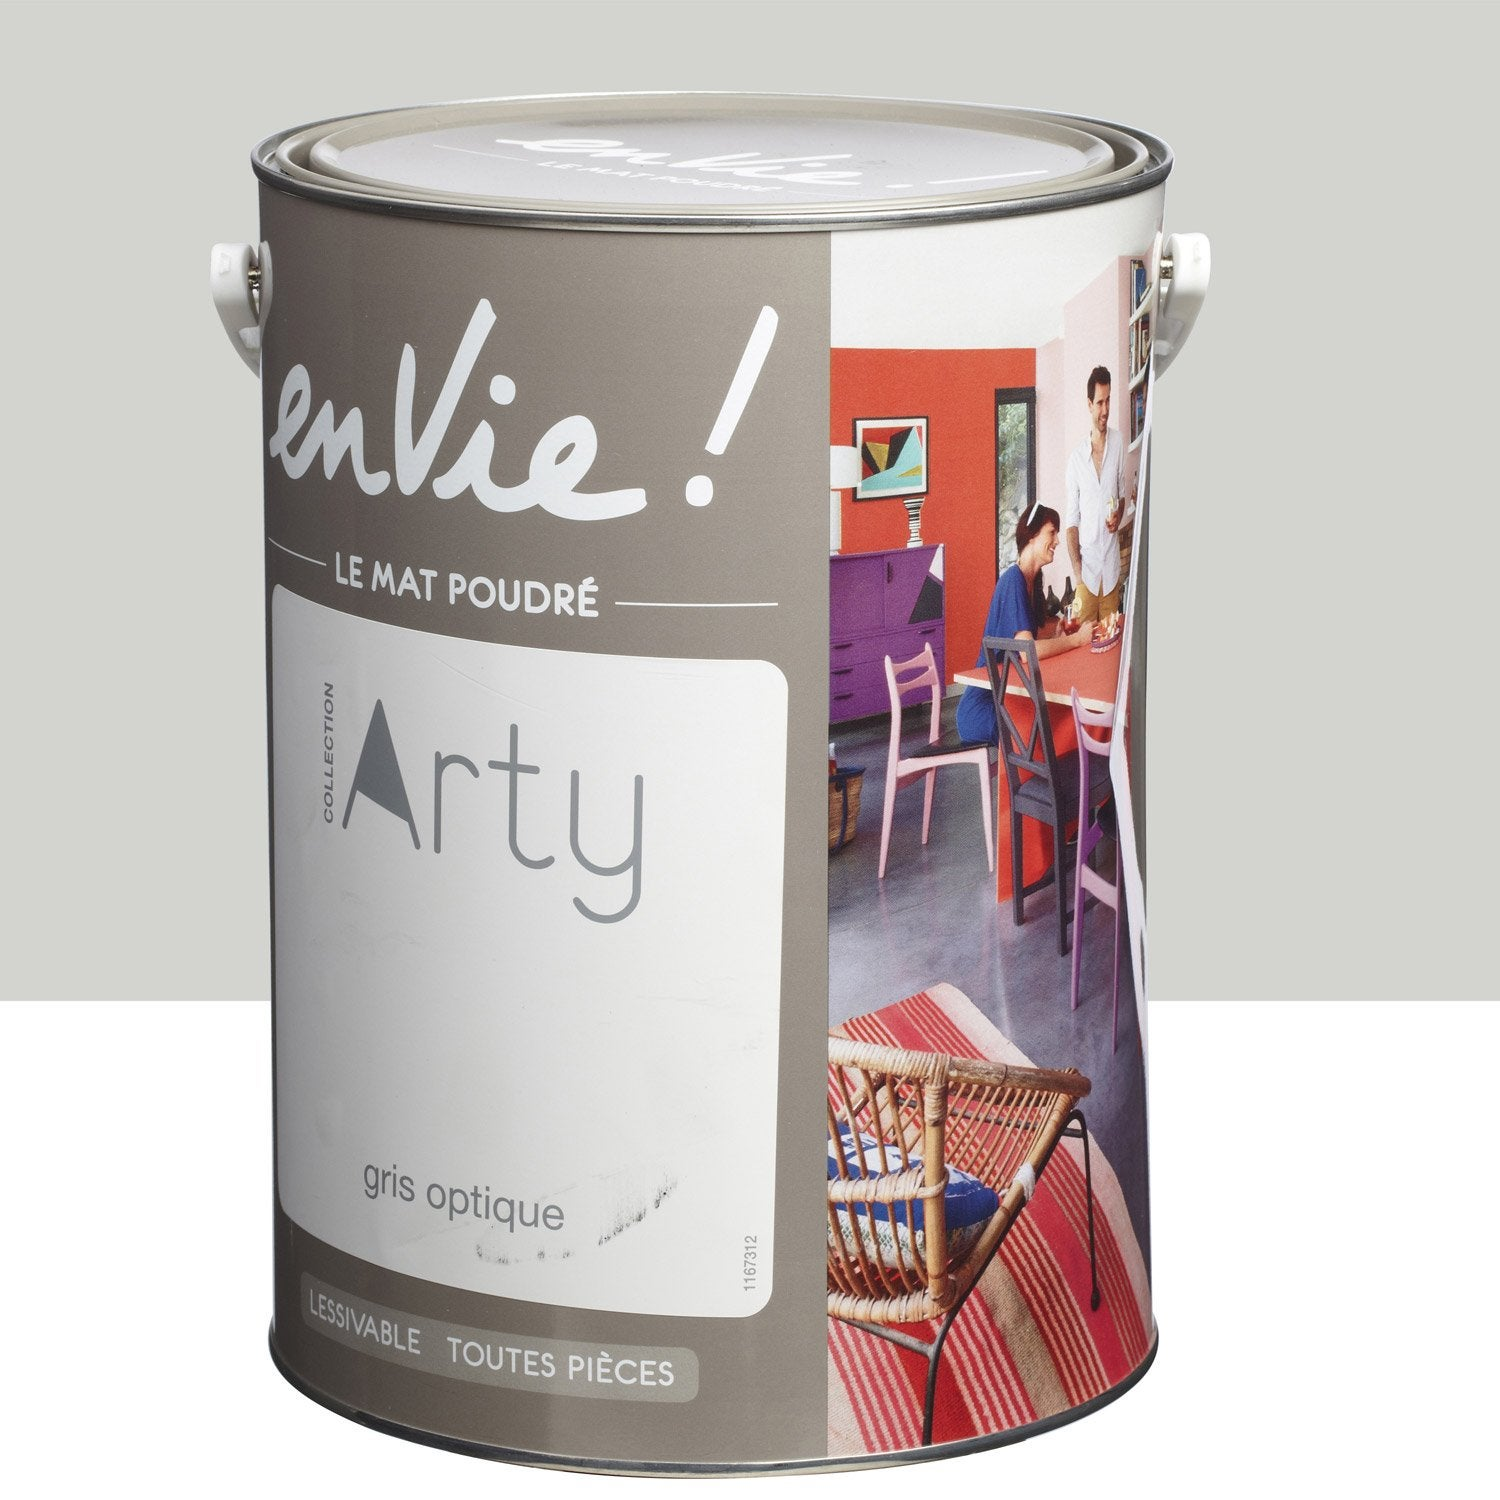 Peinture gris optique luxens envie collection arty 5 l leroy merlin - Peinture envie leroy merlin ...